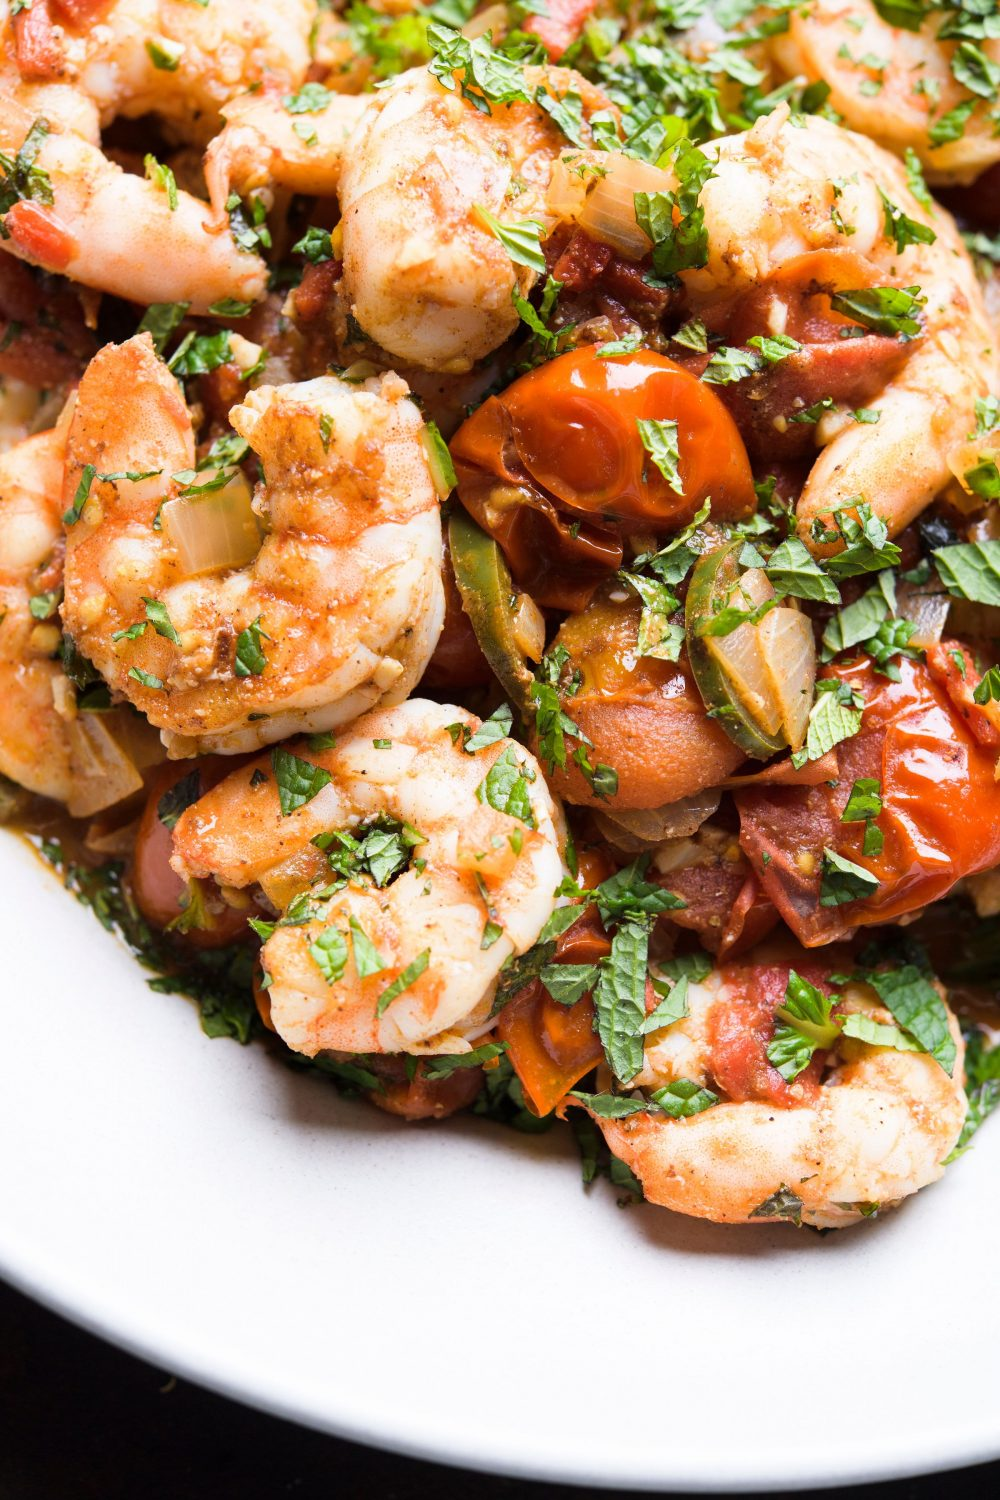 spiced-shrimp-tomatoes-fresh-mint-zibdiyit-gambari-gazan